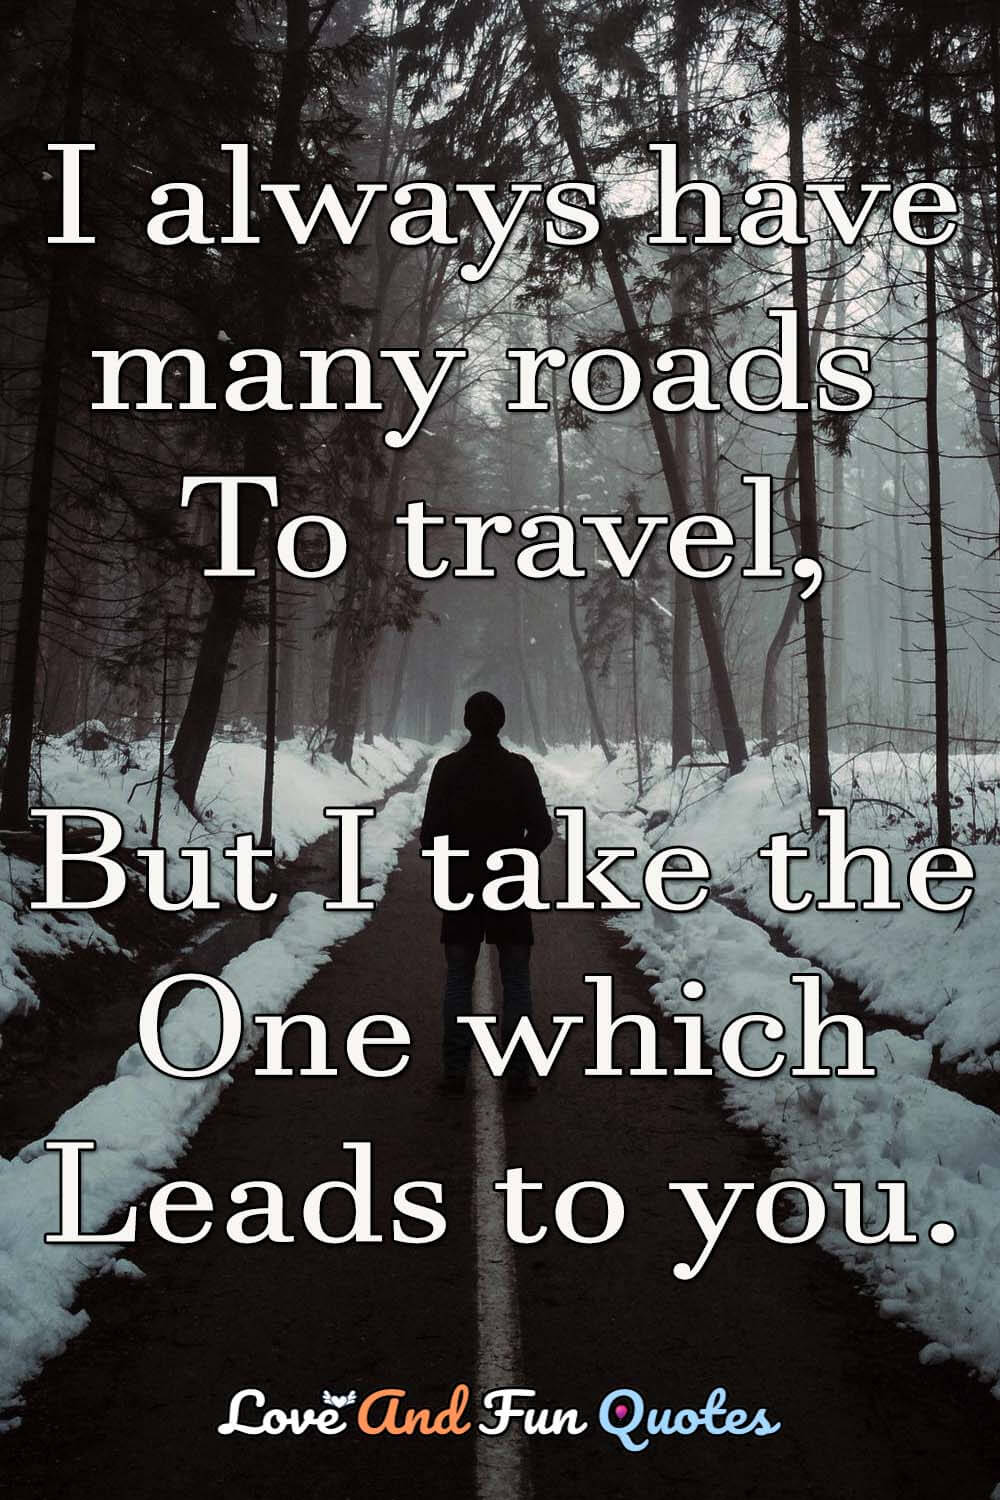 I-always-have-many-roads-to-travel-but-i-take-the-one-which-leads-you